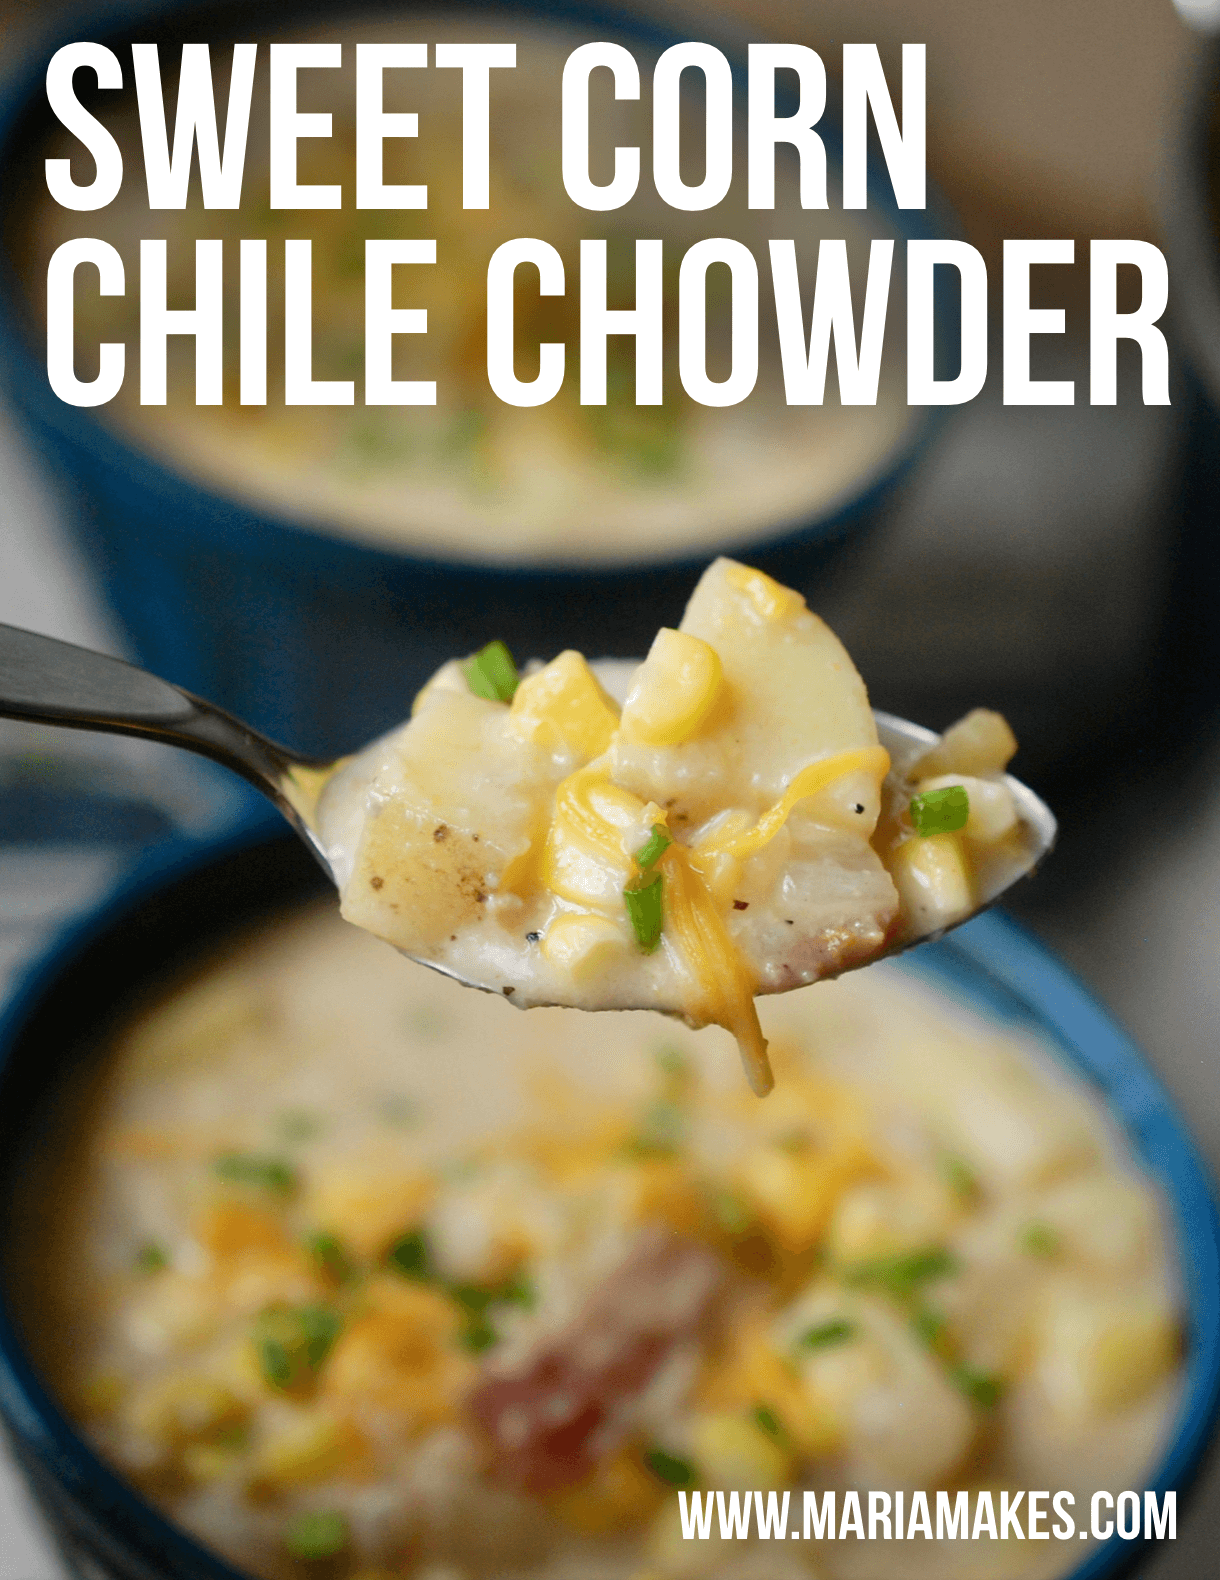 Sweet Corn Chile Chowder – Maria Makes: Hearty, rich, creamy. Everything you want a chowder to be! Add some farm fresh corn, bacon, chives, and cheddar cheese, and you've never tasted anything more delicious! This one has diced green chiles and Frank's Red Hot for a spicy kick.